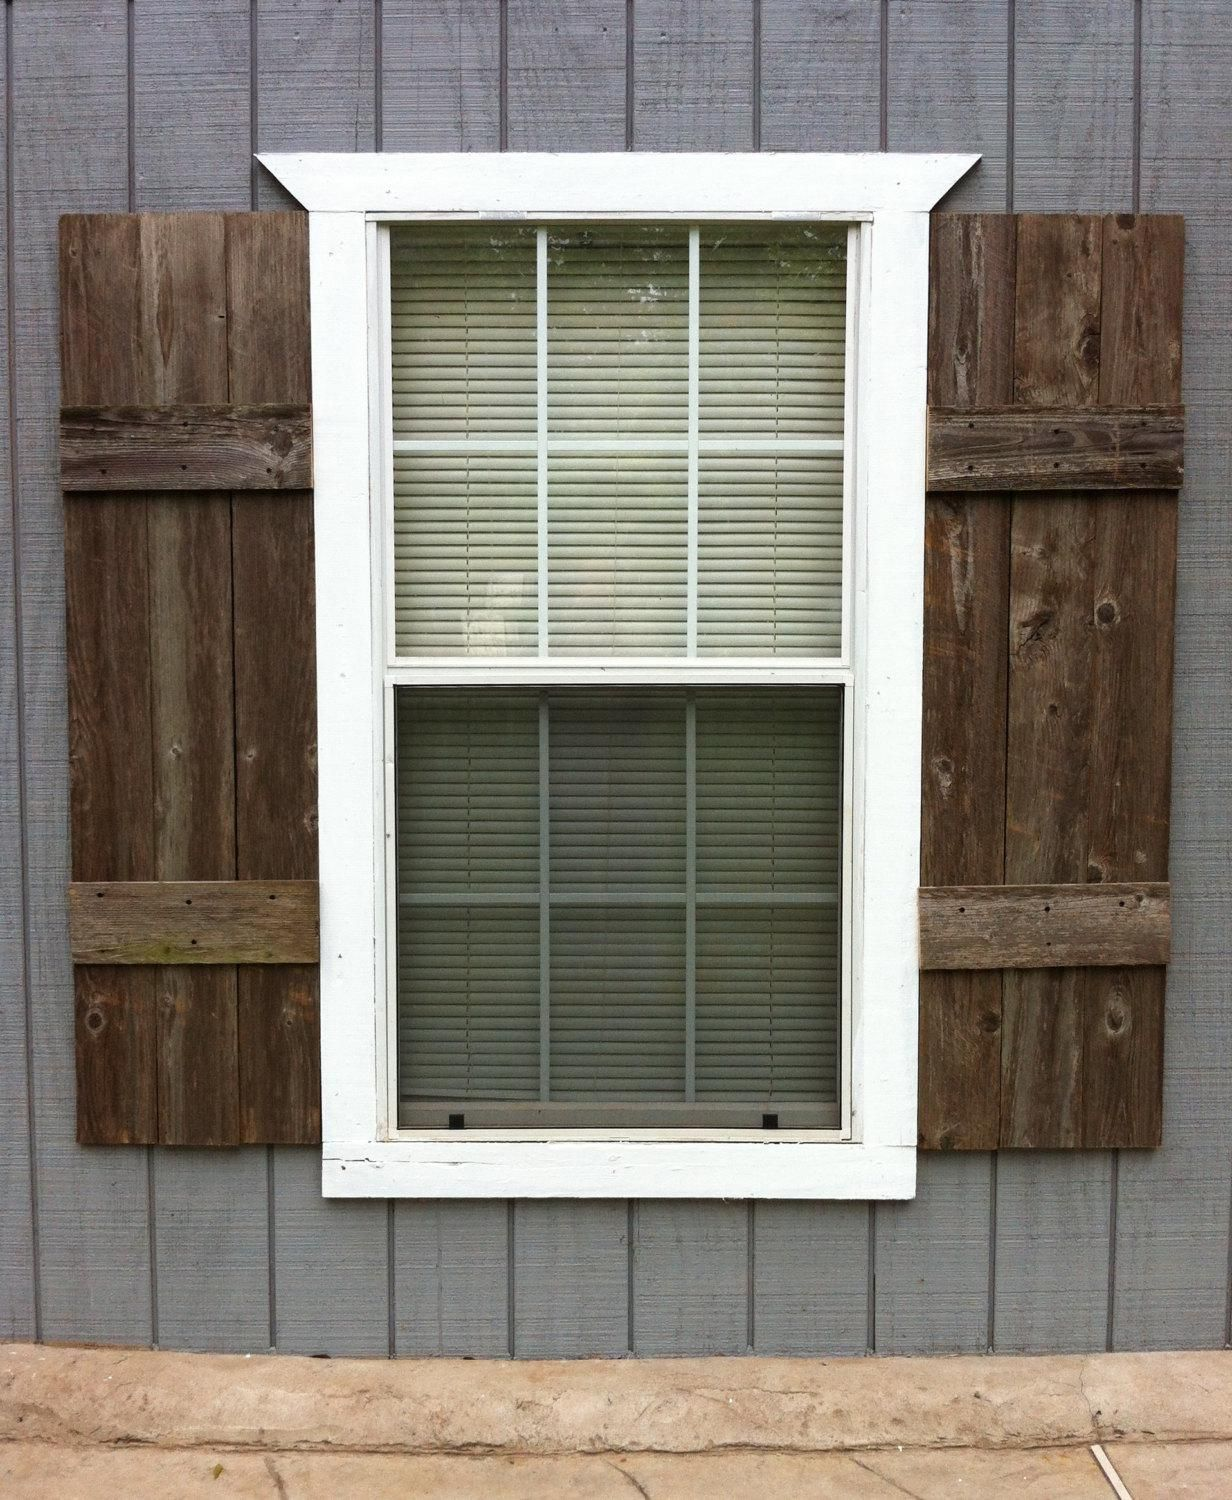 Exterior windows with shutters - Image Of Window Shutters Exterior Wood